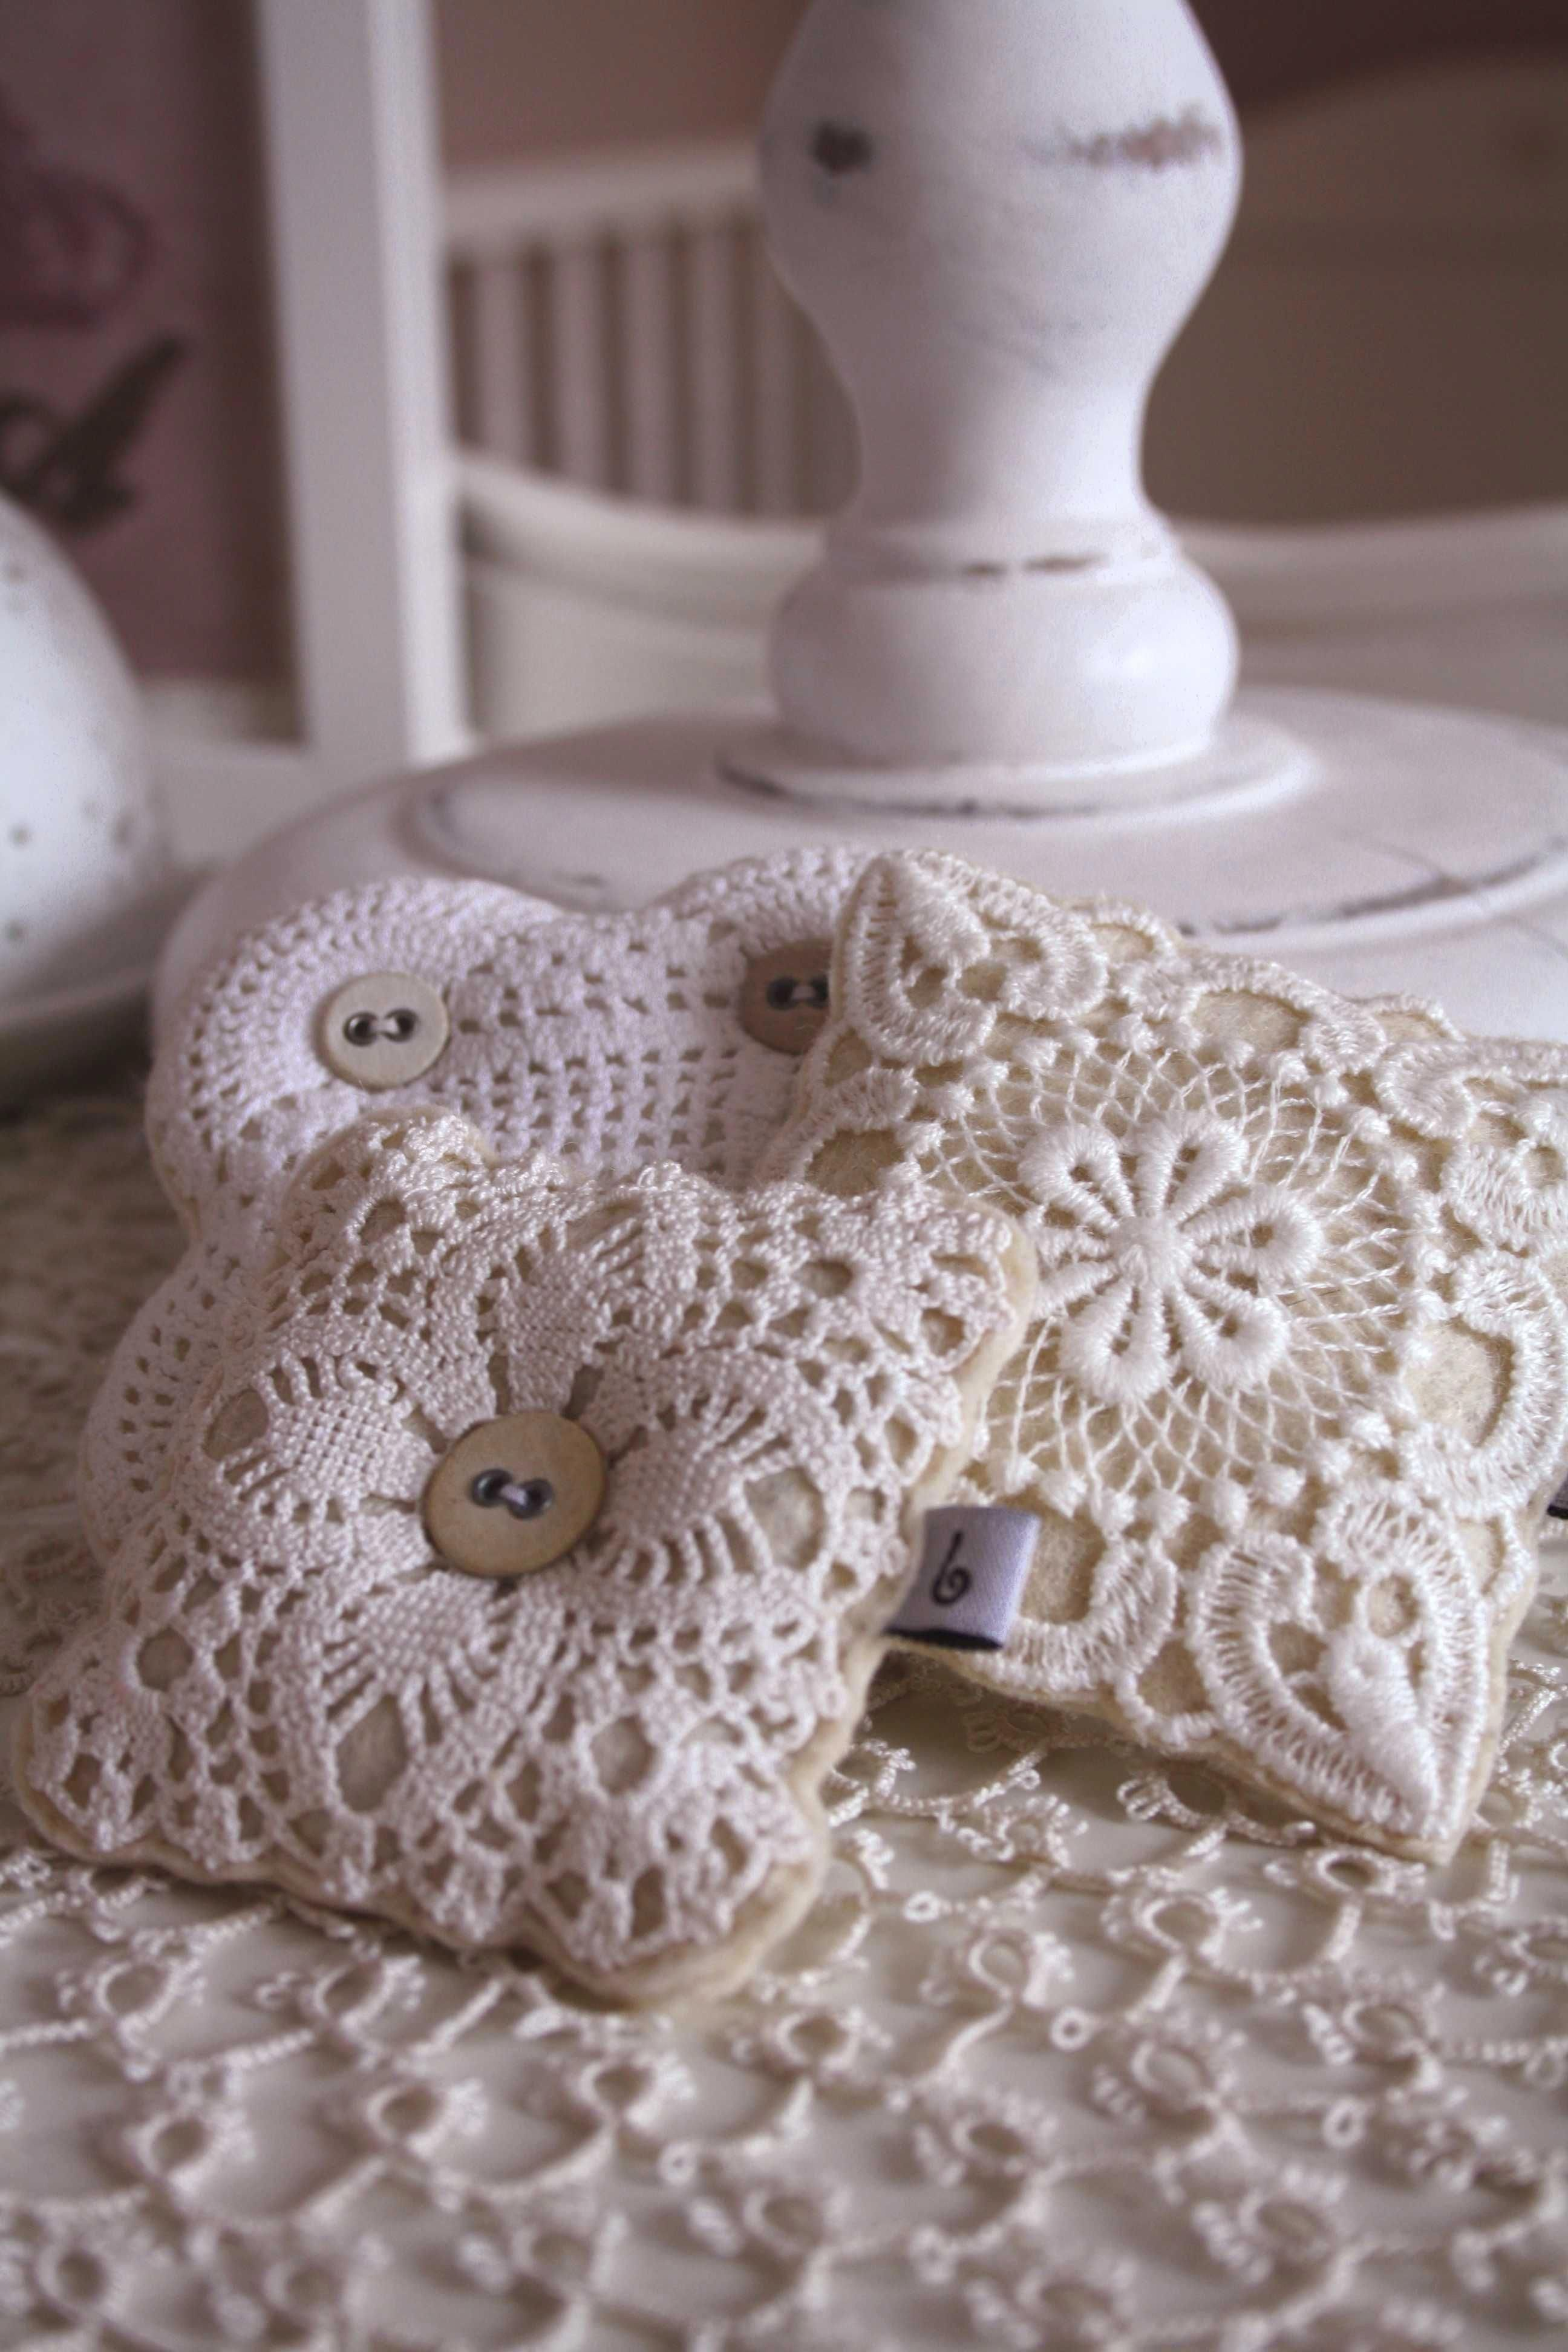 !Hand Crochet Lace Ribbon Rose Embroidery Cotton Heart Shape Doily Satchel Beige